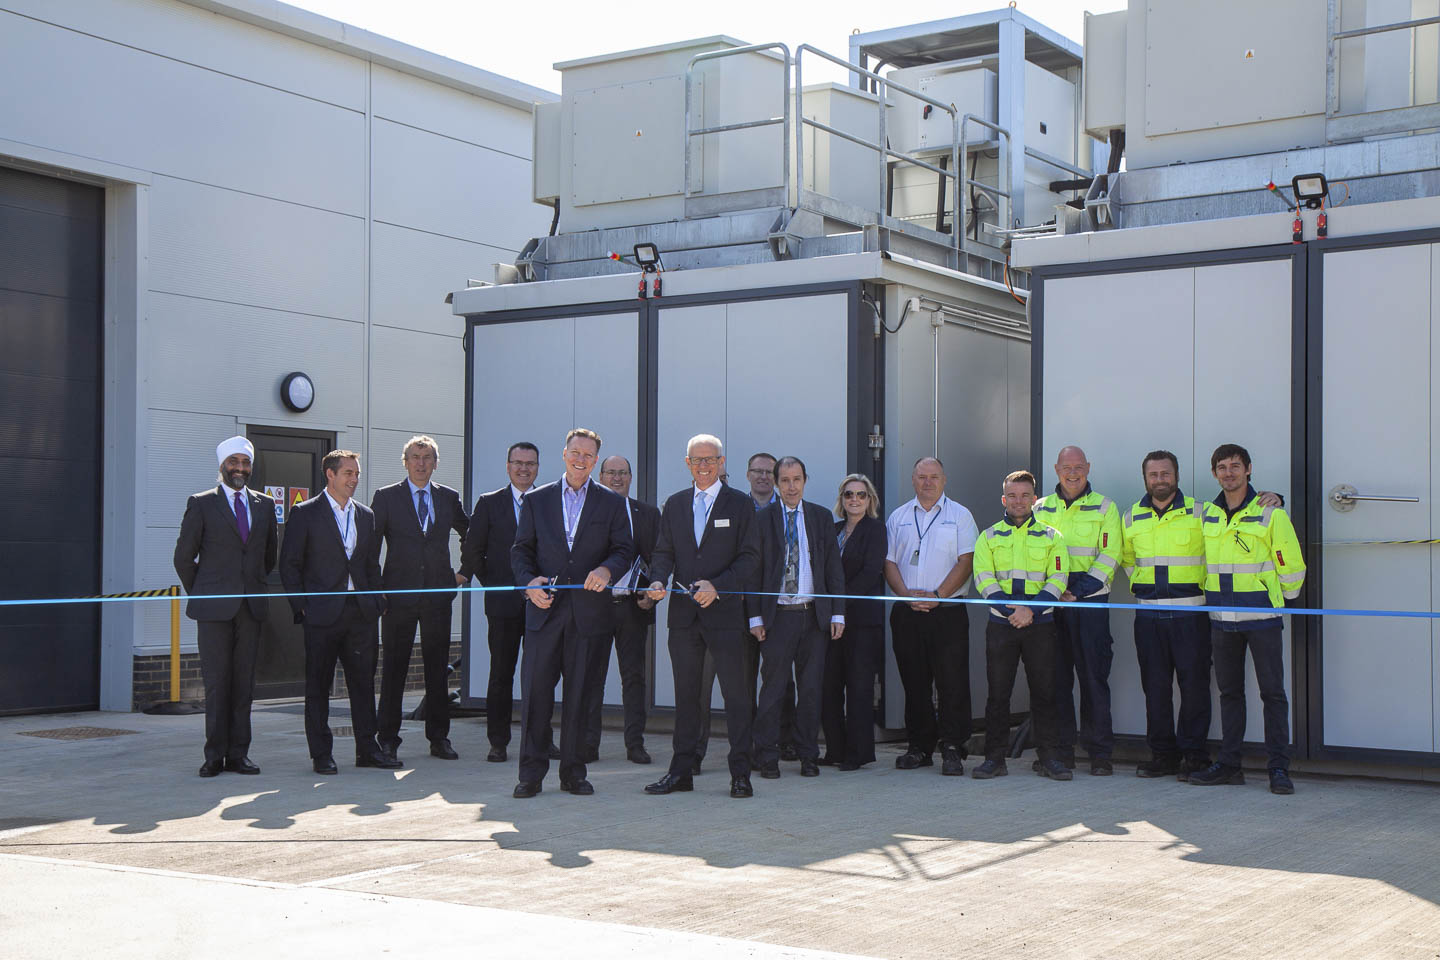 Battery performance test facility opening at Millbrook Proving Ground